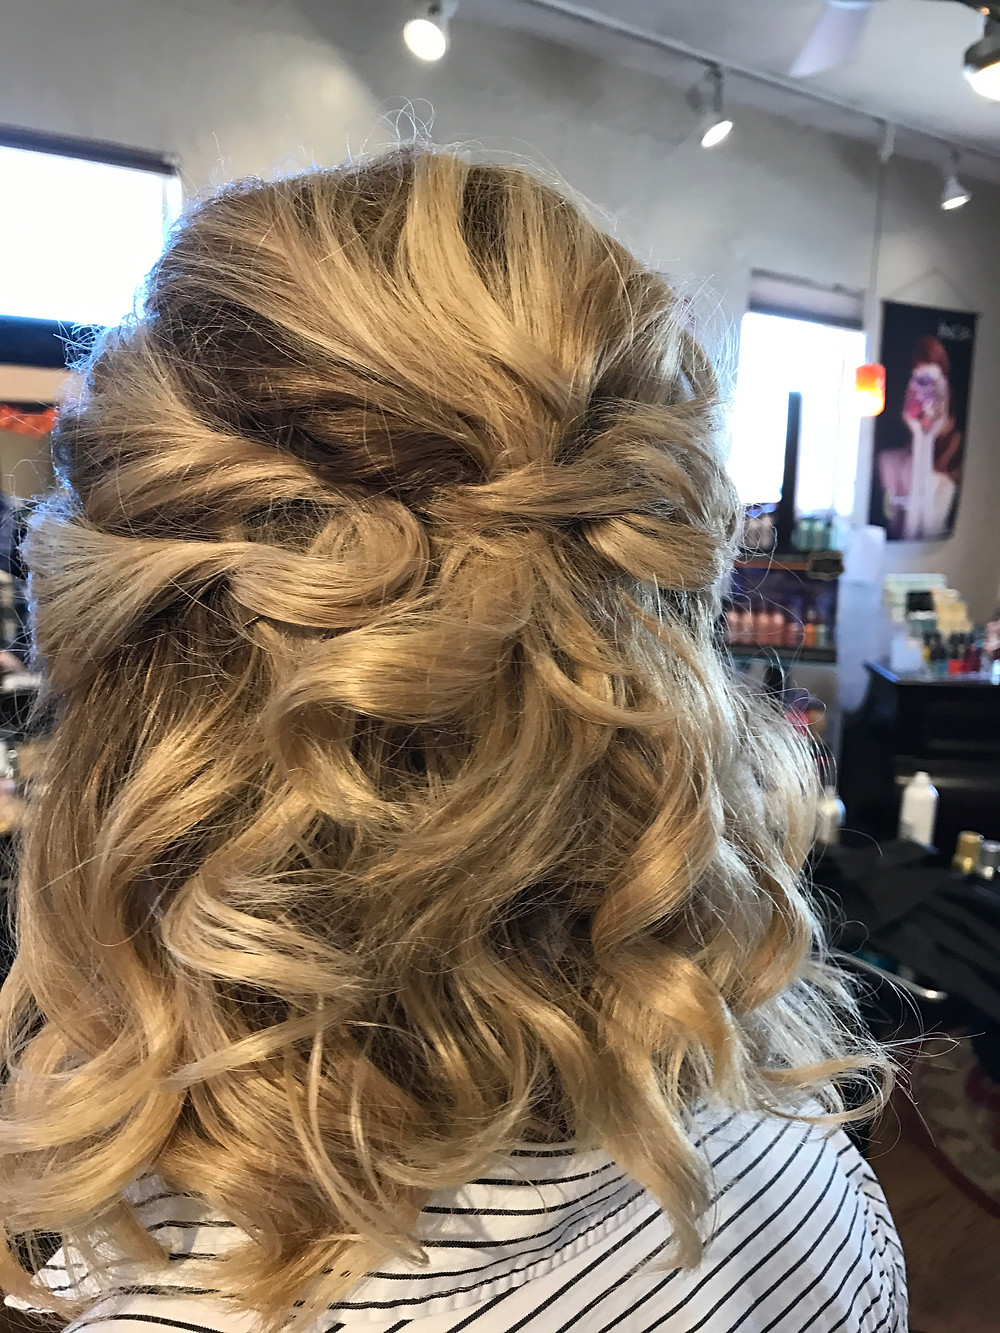 some curls and bob pins - Voila!